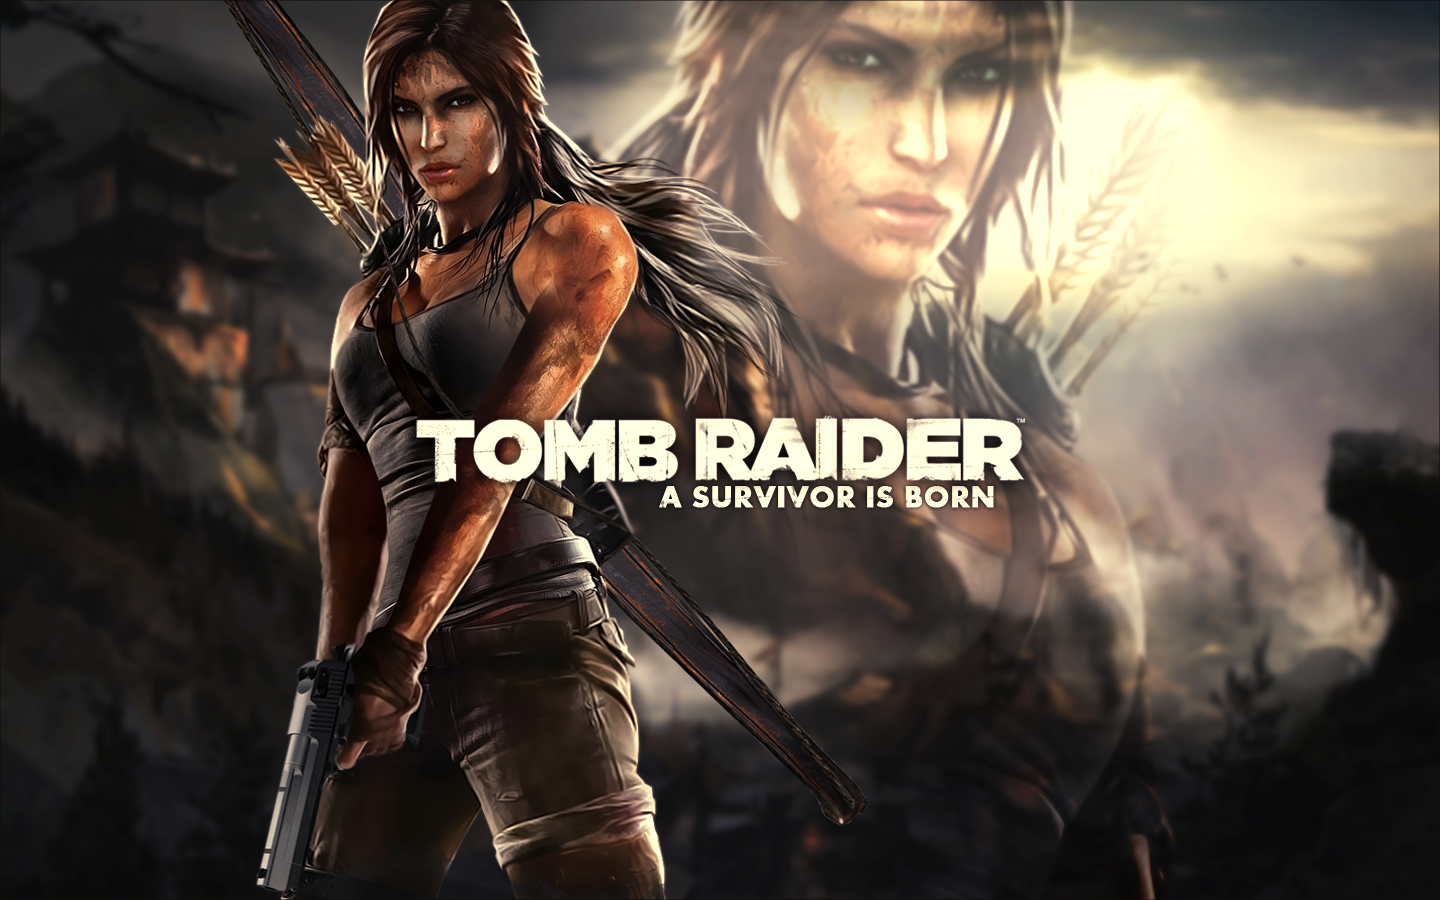 Tomb Raider Wallpapers FHDQ 1440x900